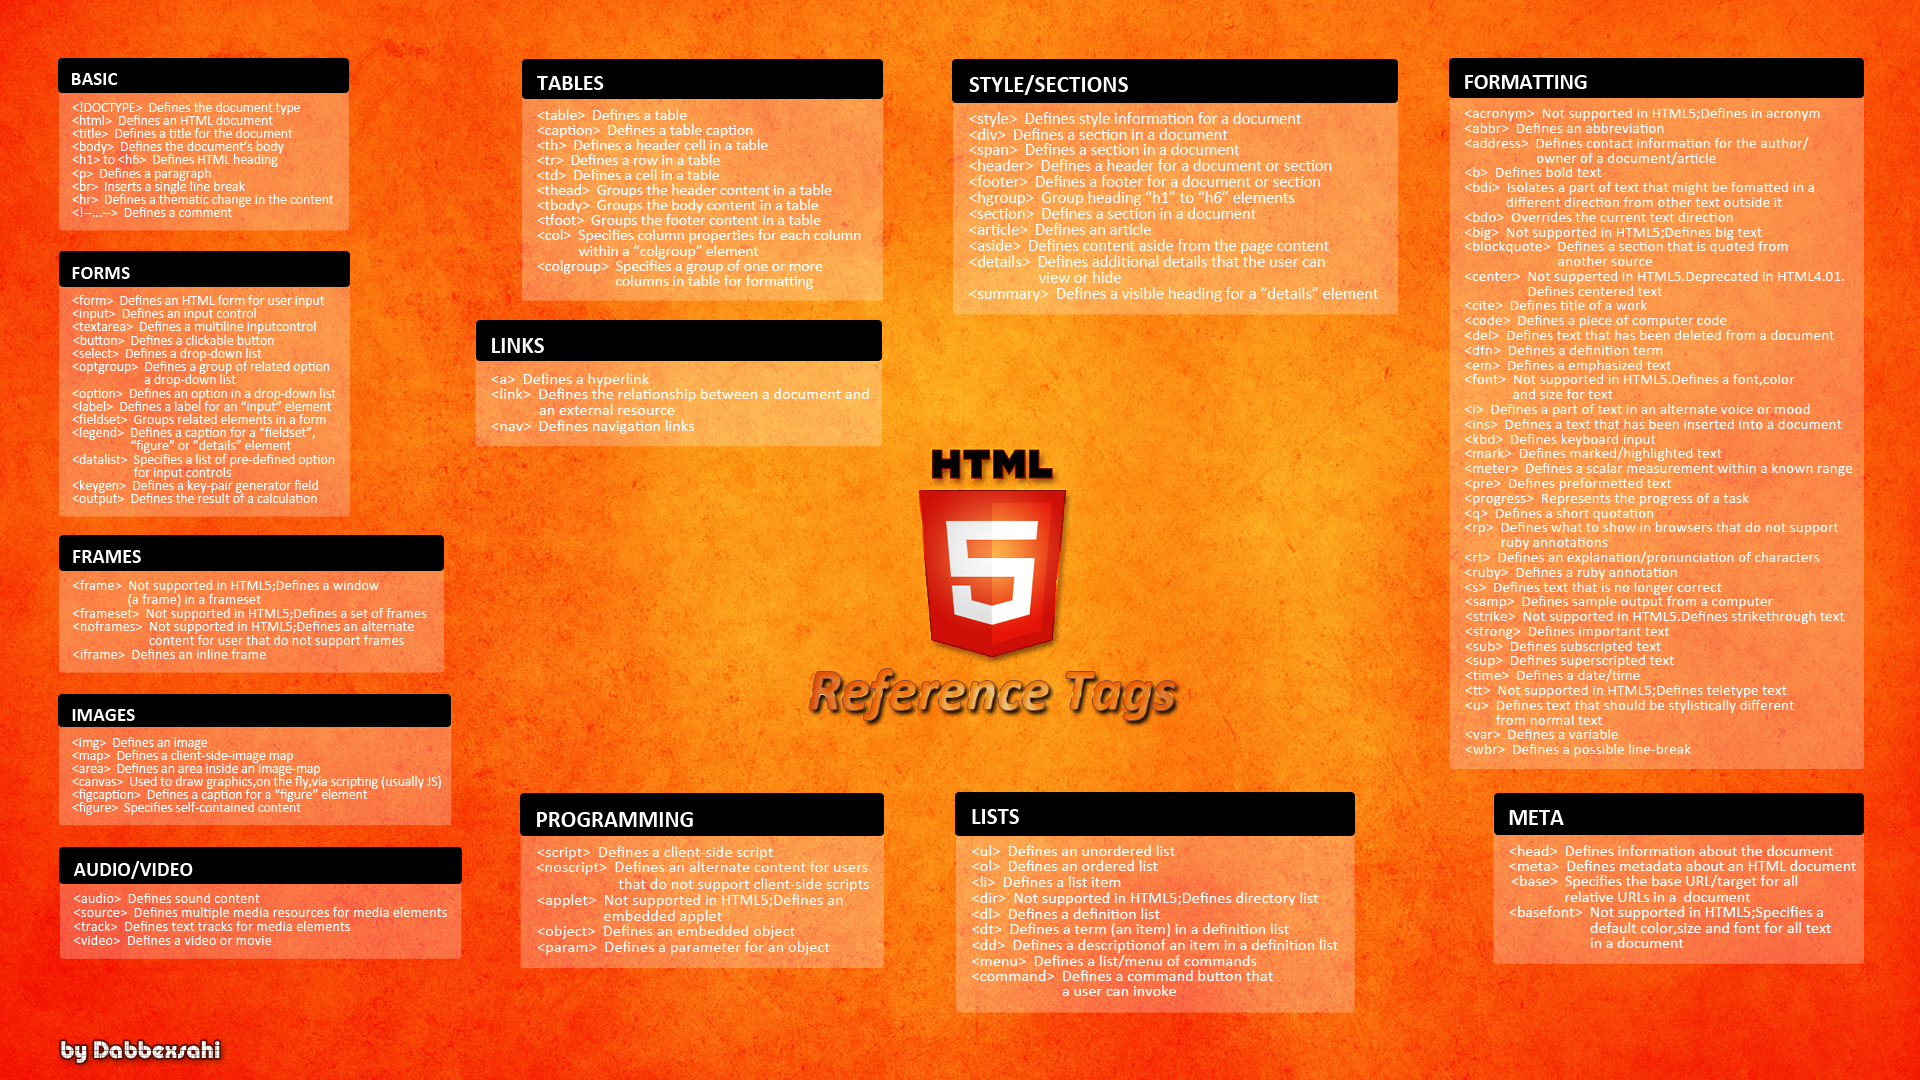 HTML5-Cheat Sheet by dabbex30 on DeviantArt